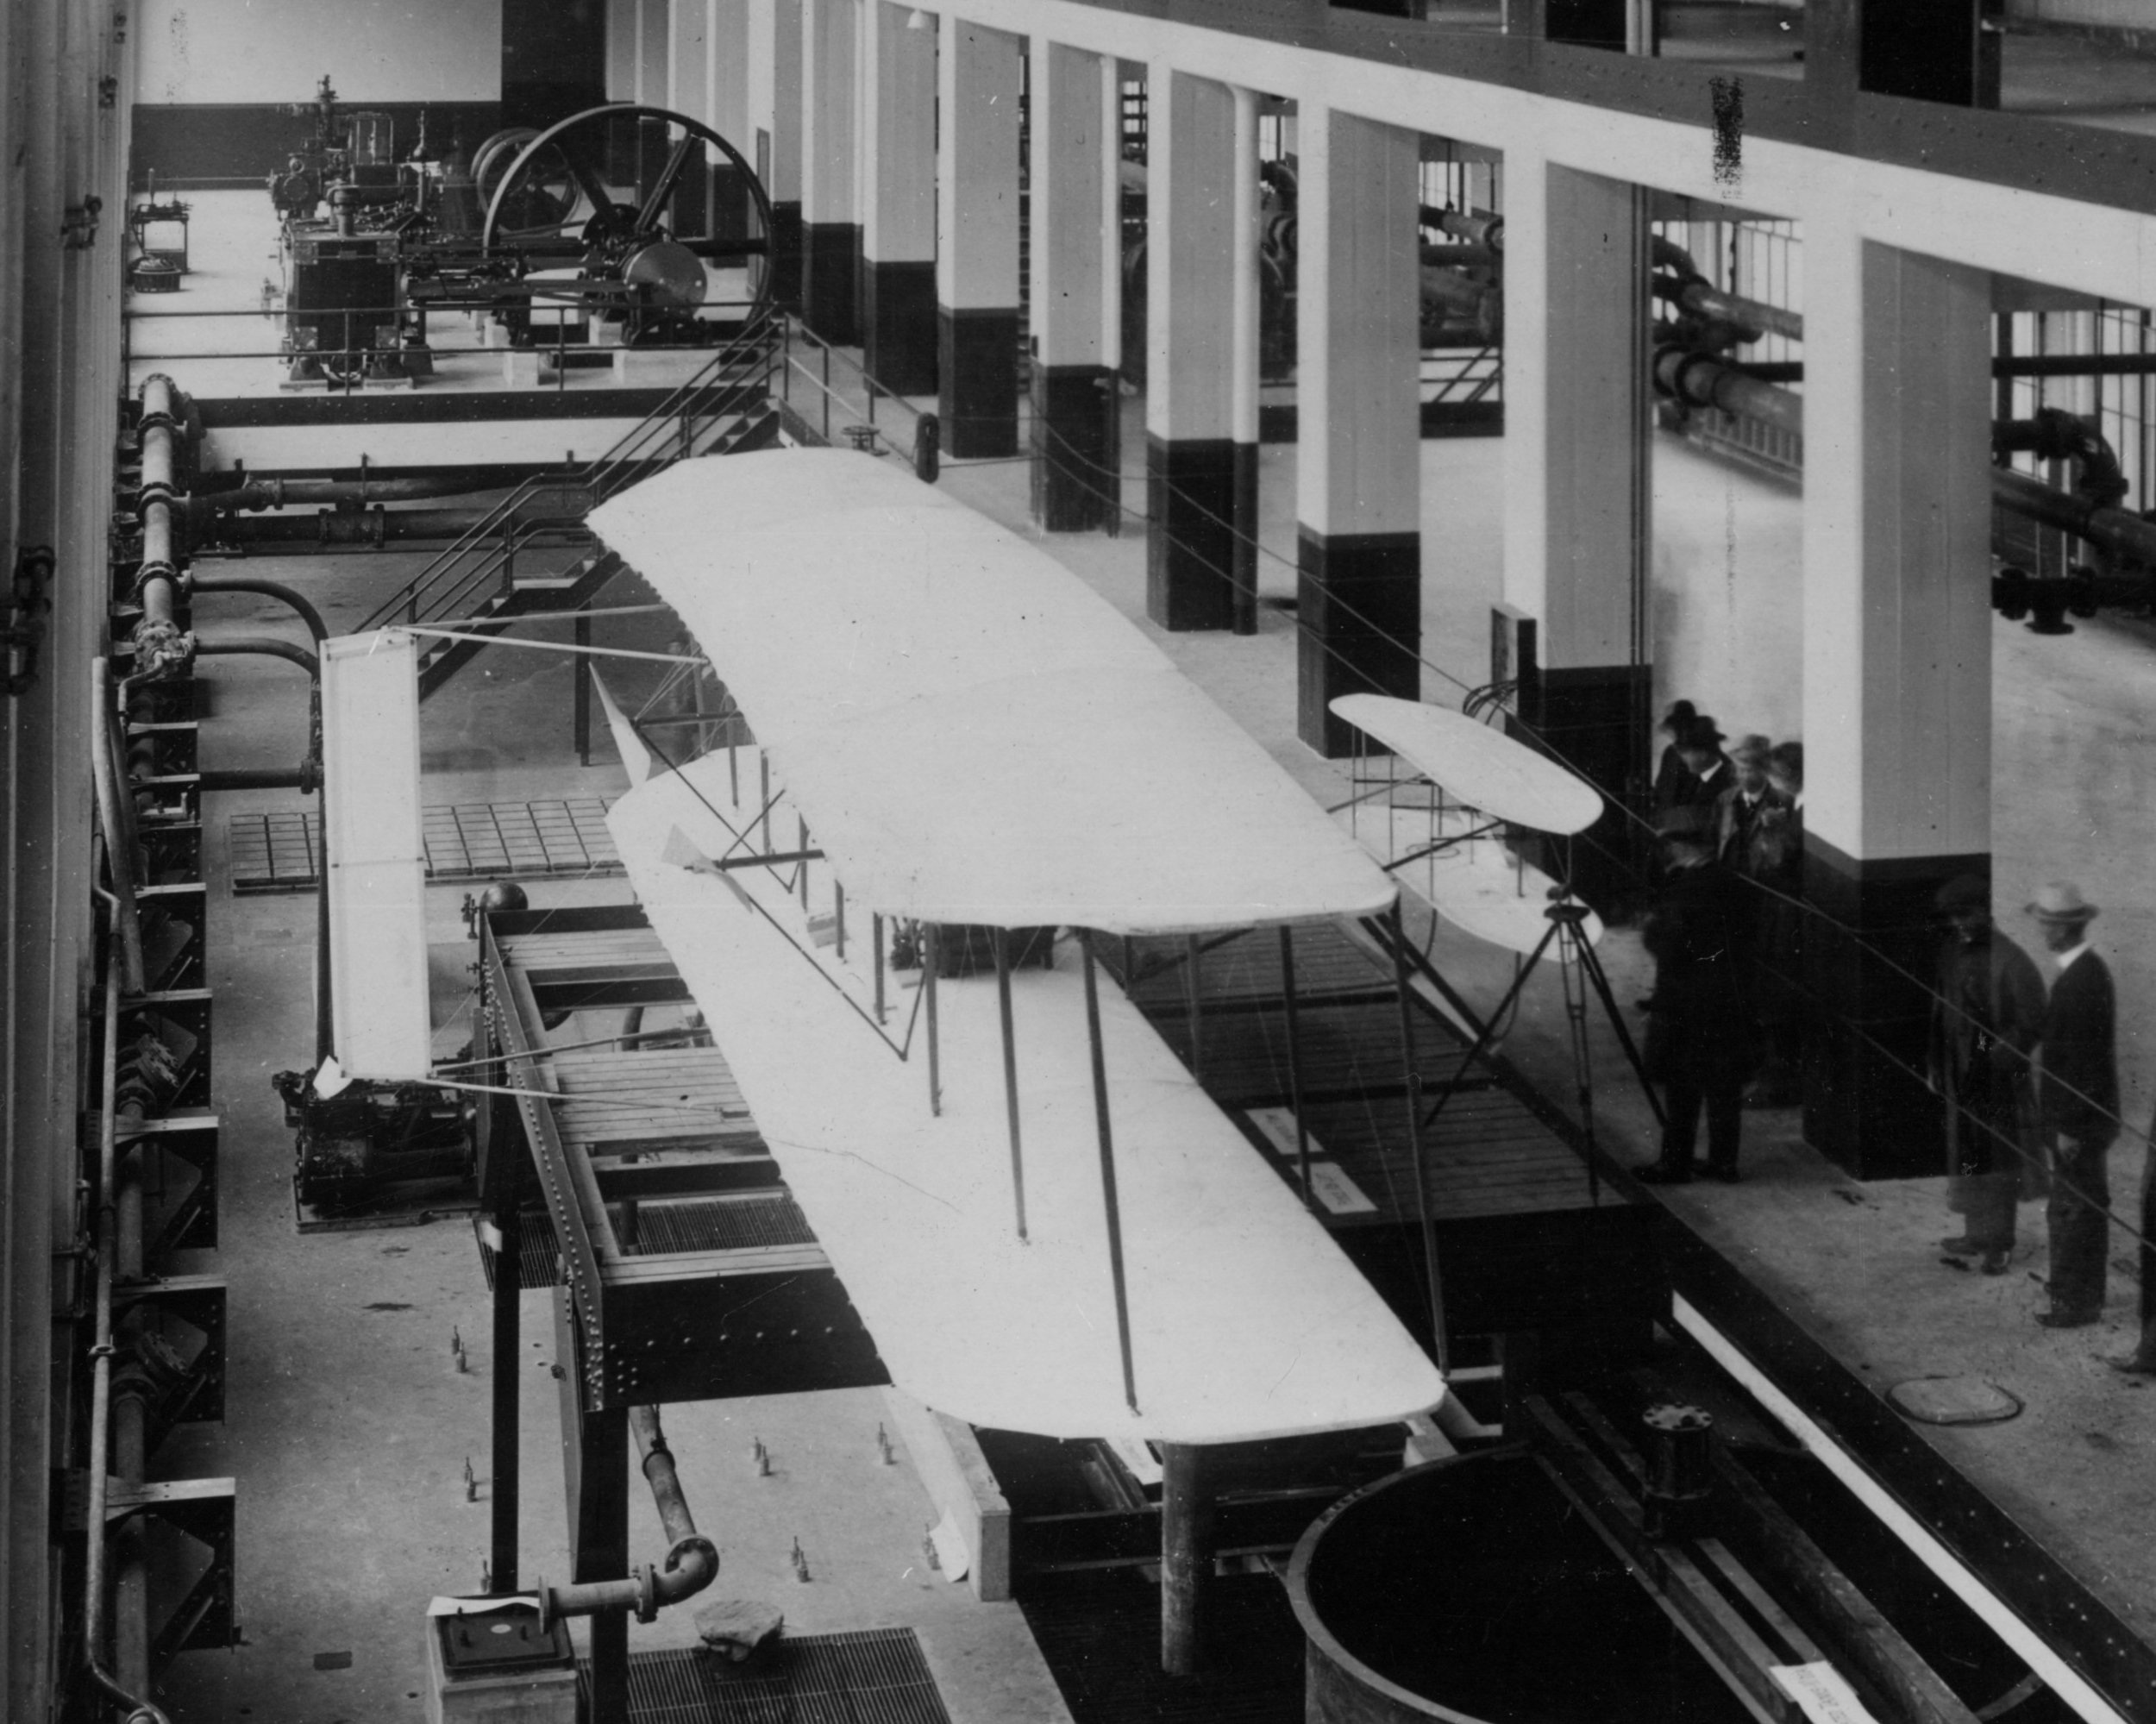 The 1903 Wright Flyer on display at MIT in 1916.